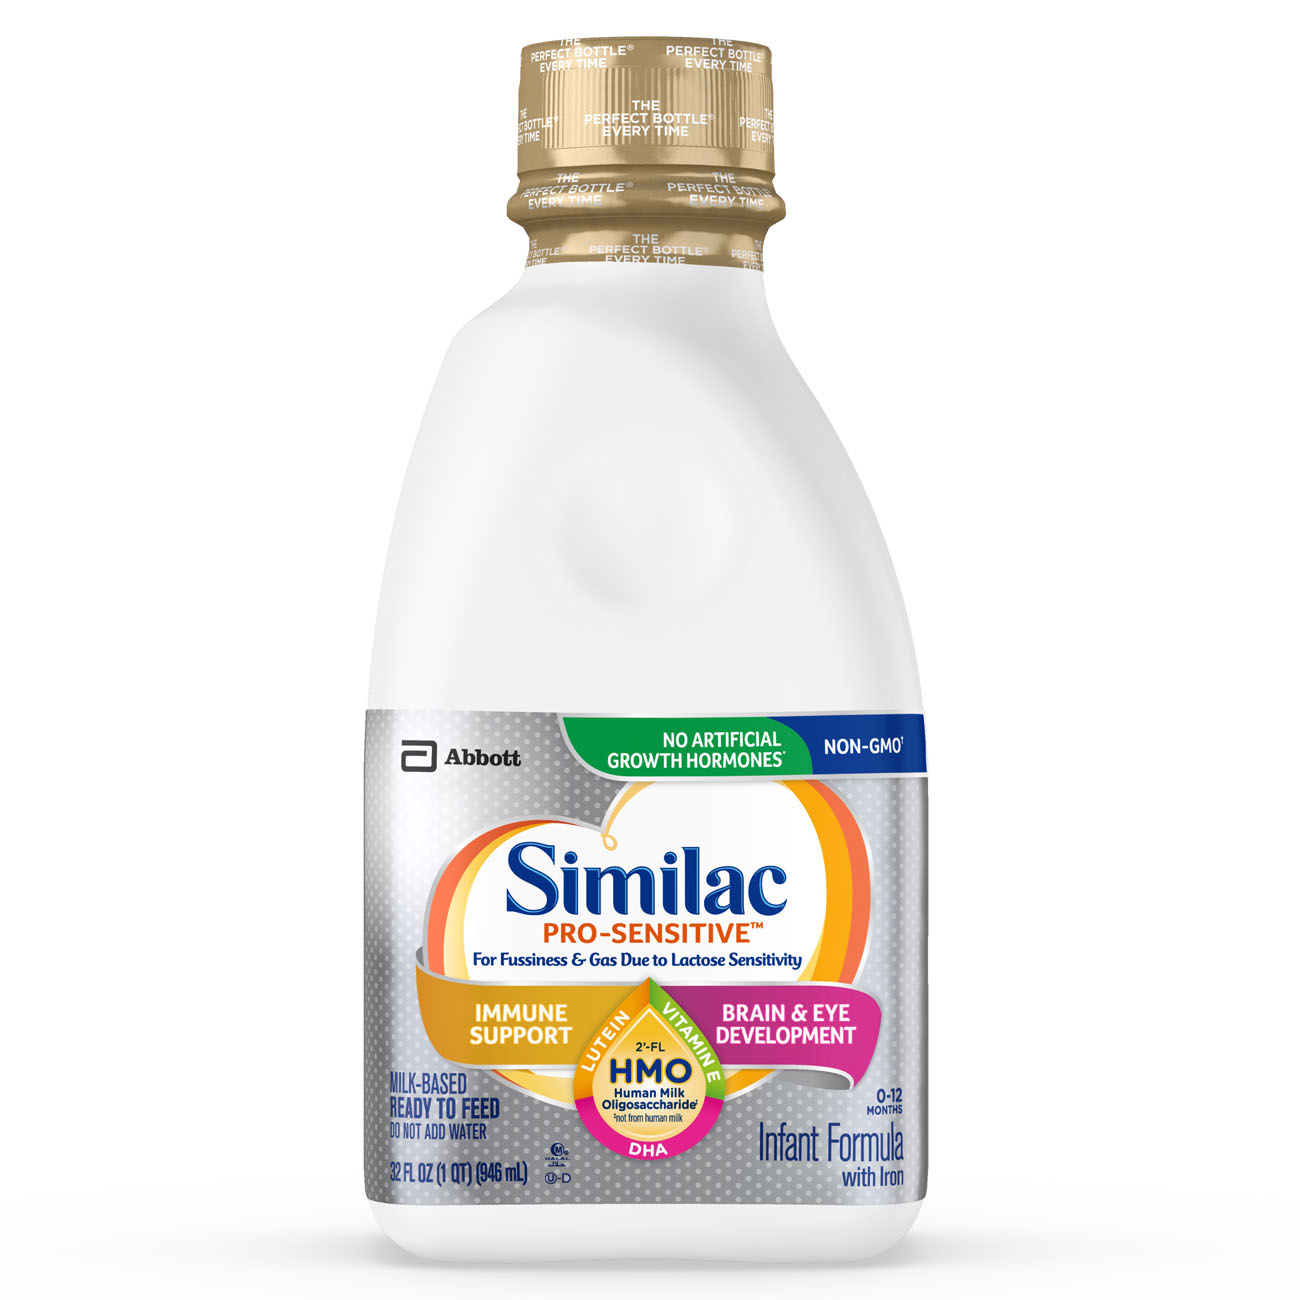 Similac Pro-Sensitive Non-GMO with 2'-FL HMO Infant Formula with Iron for Immune Support, Baby Formula 32 fl oz Bottle